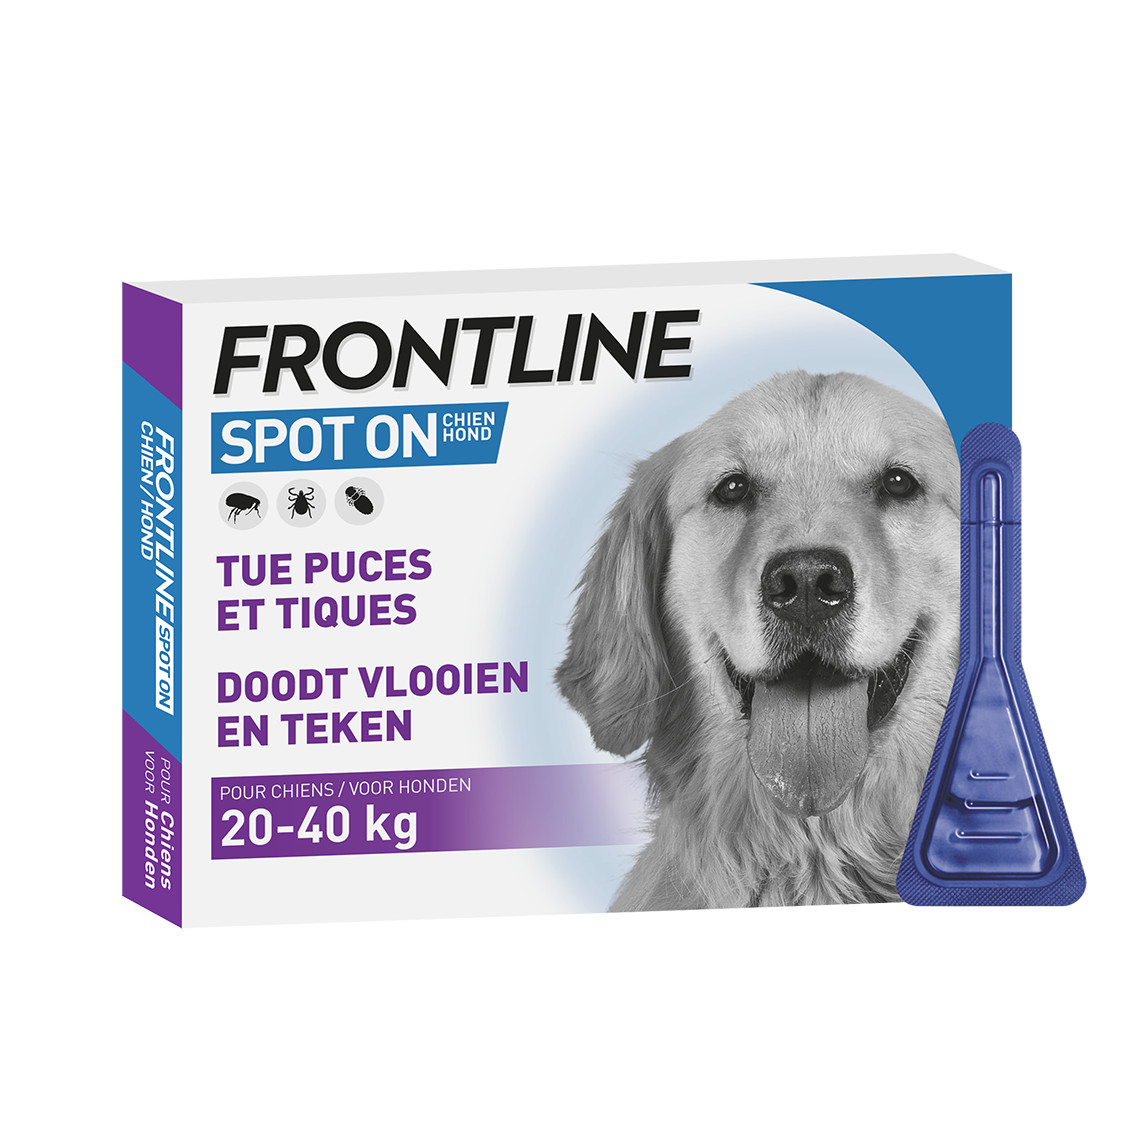 Frontline Spot On Chiens L